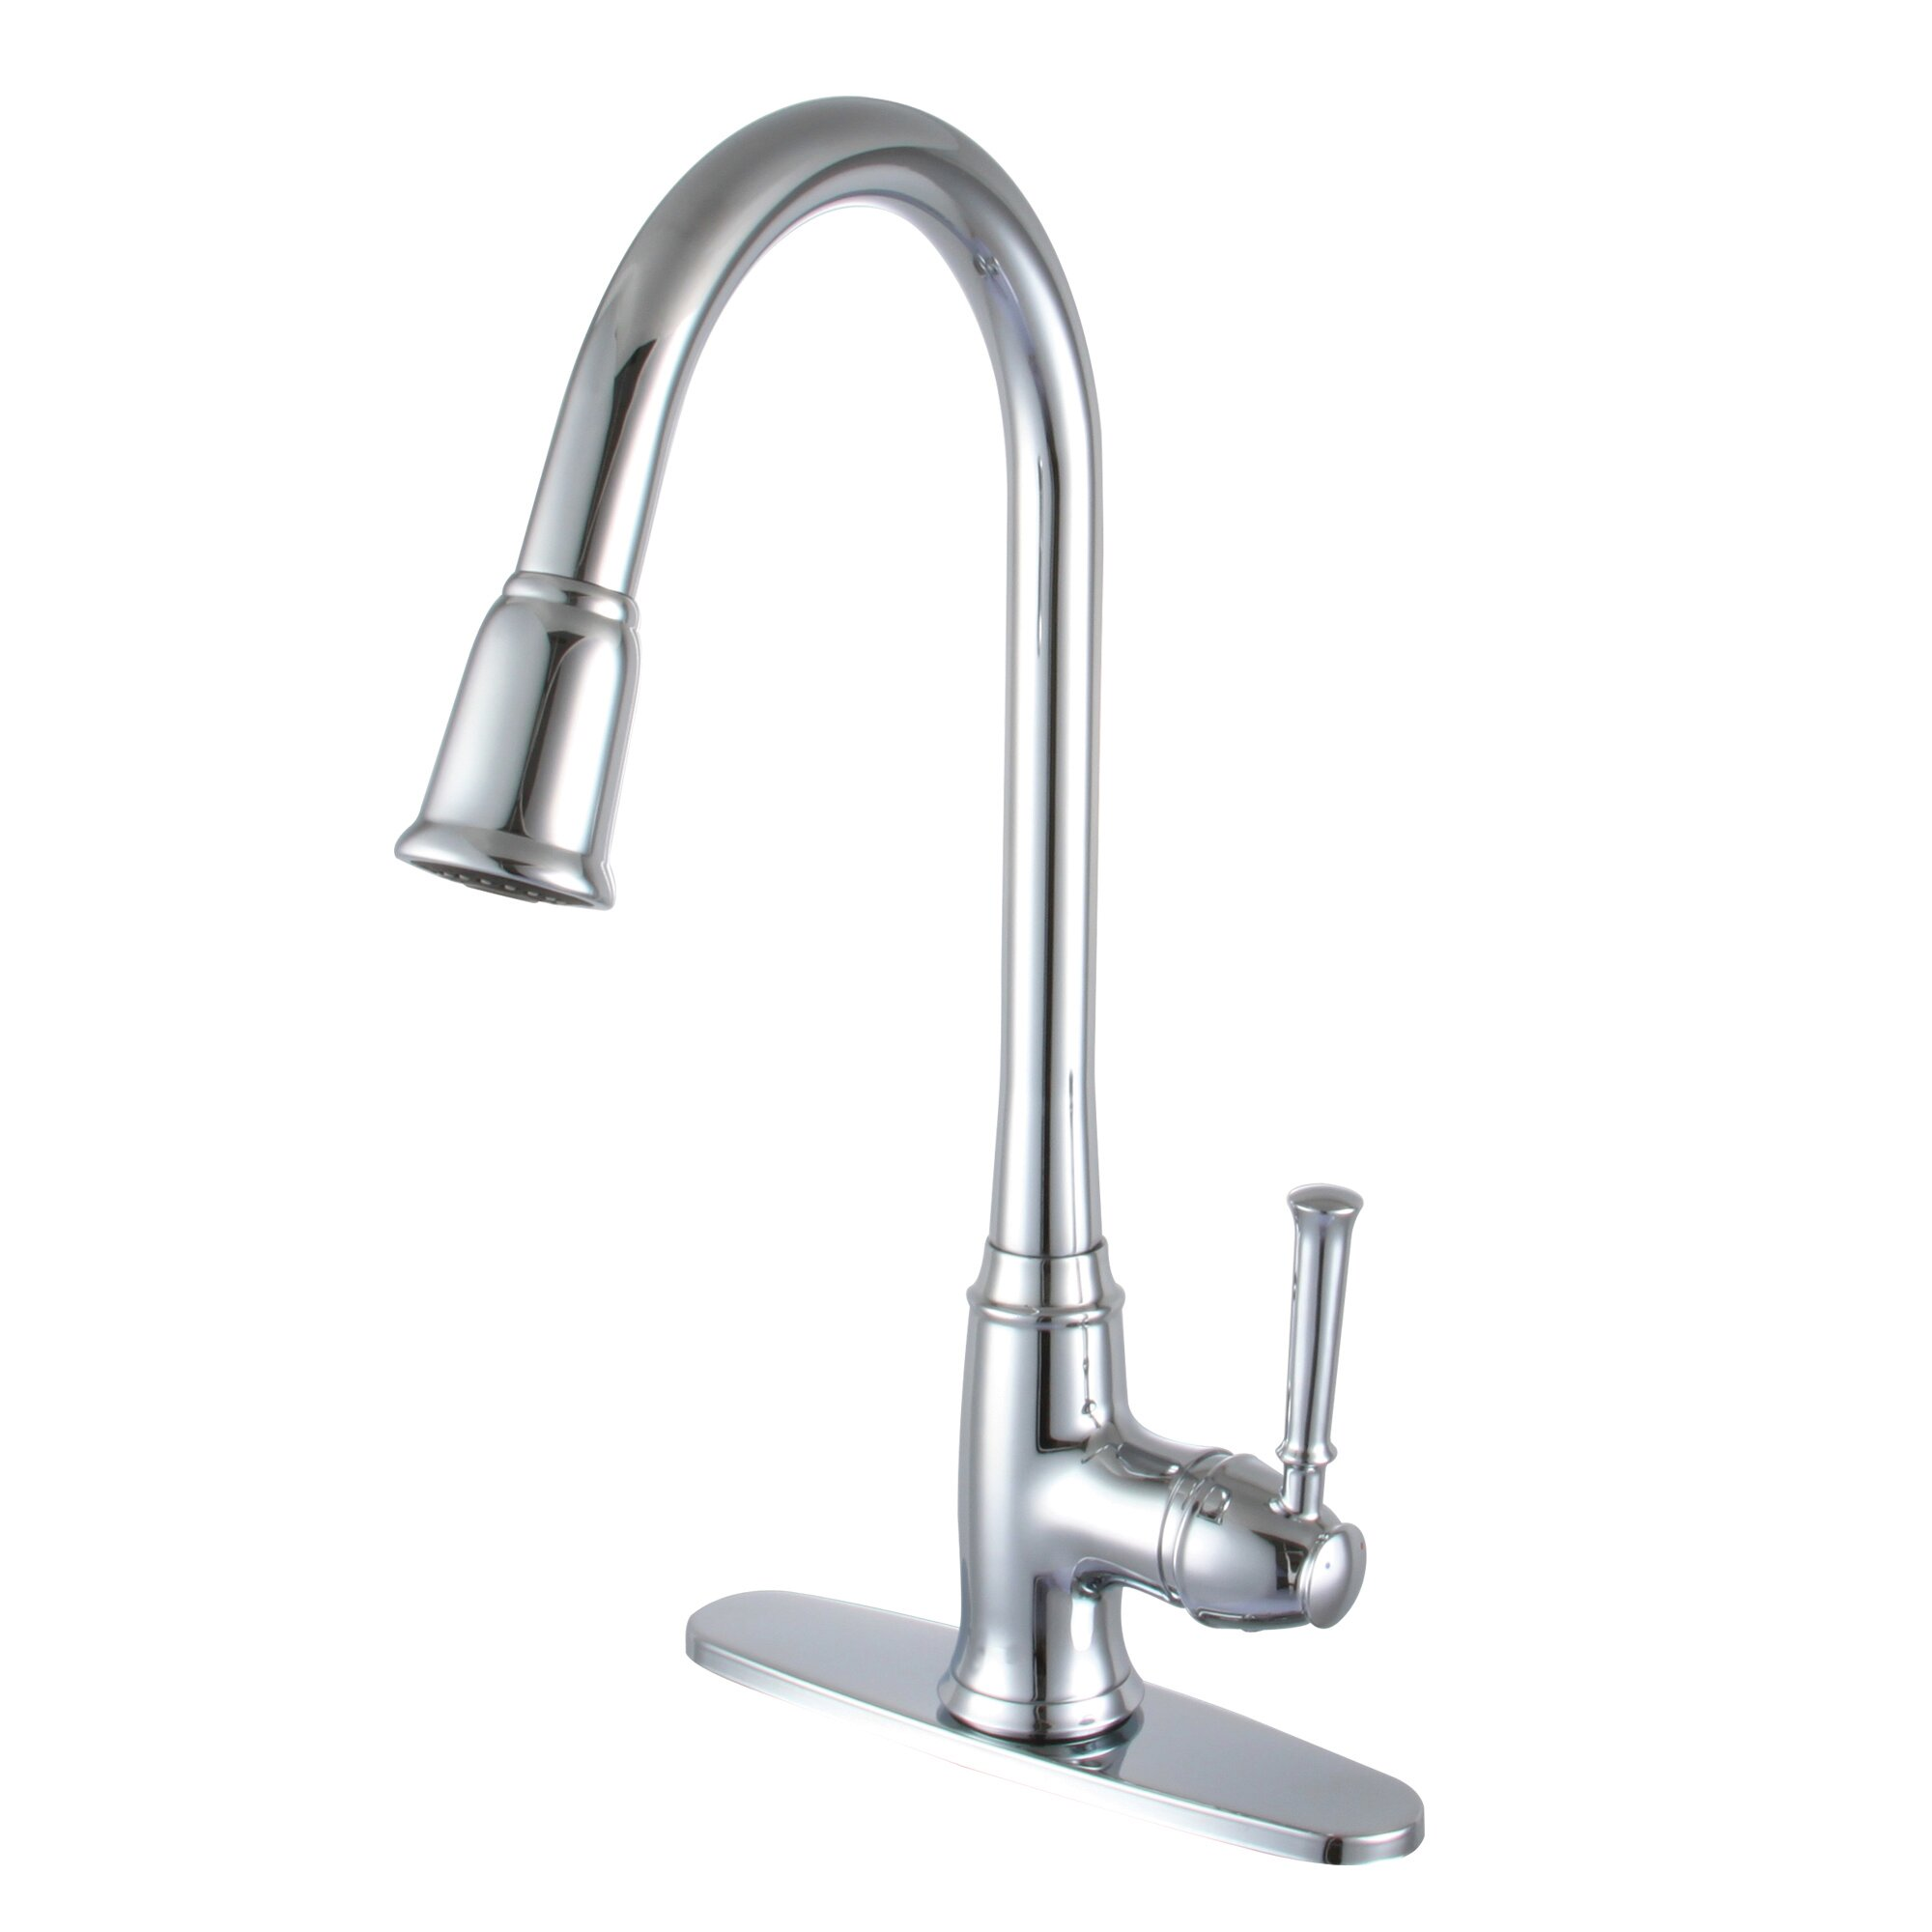 yosemite home decor single handle deck kitchen faucet reviews wayfair. Black Bedroom Furniture Sets. Home Design Ideas